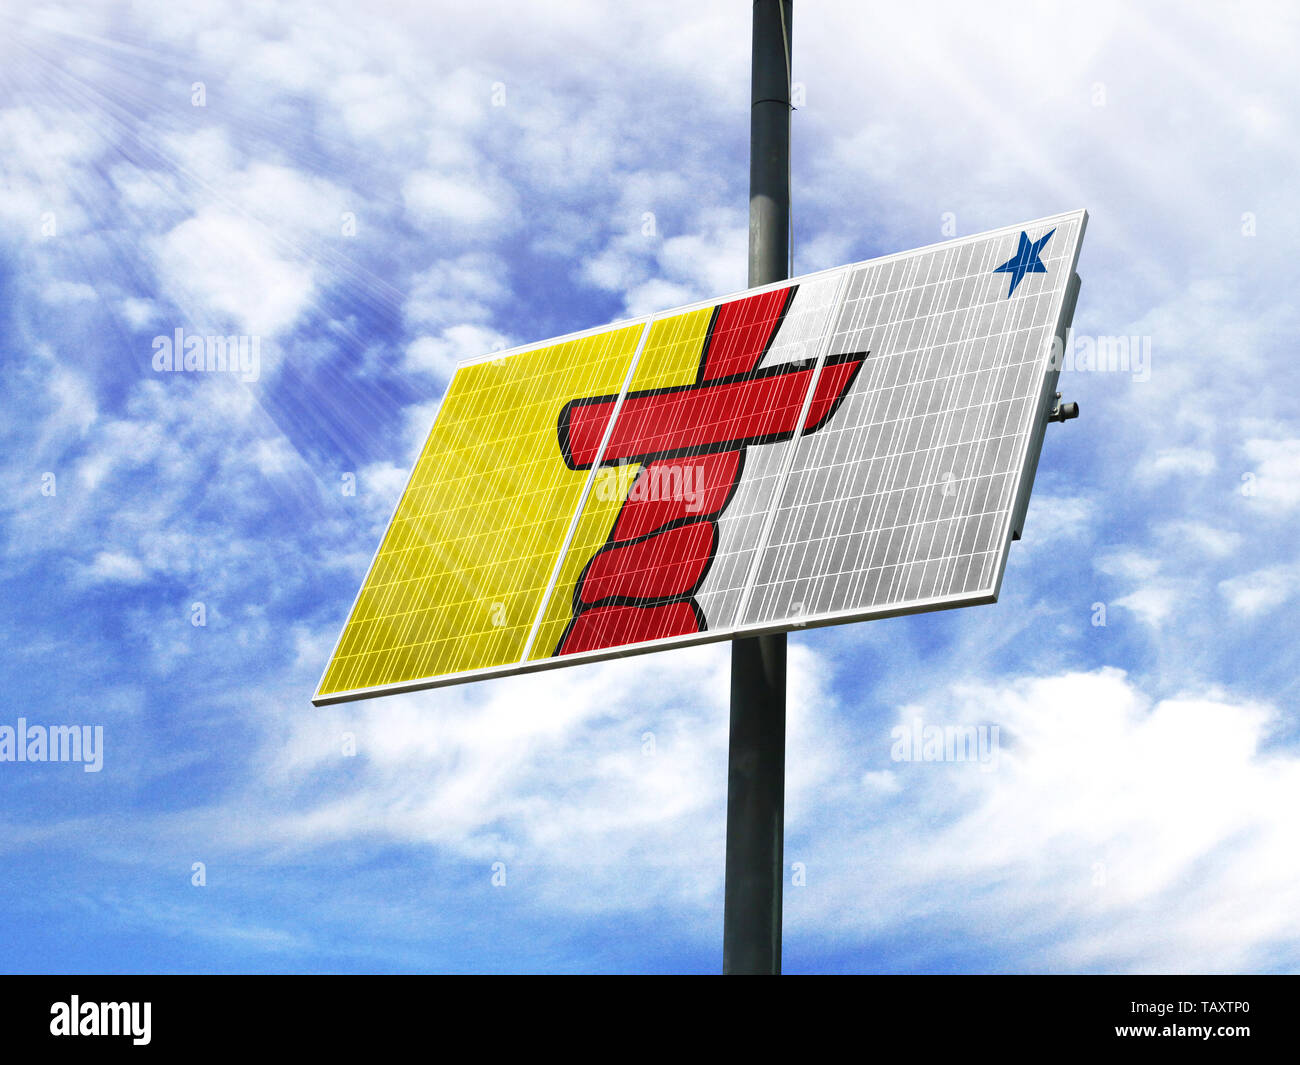 Solar panels against a blue sky with a picture of the flag of Nunavut - Stock Image